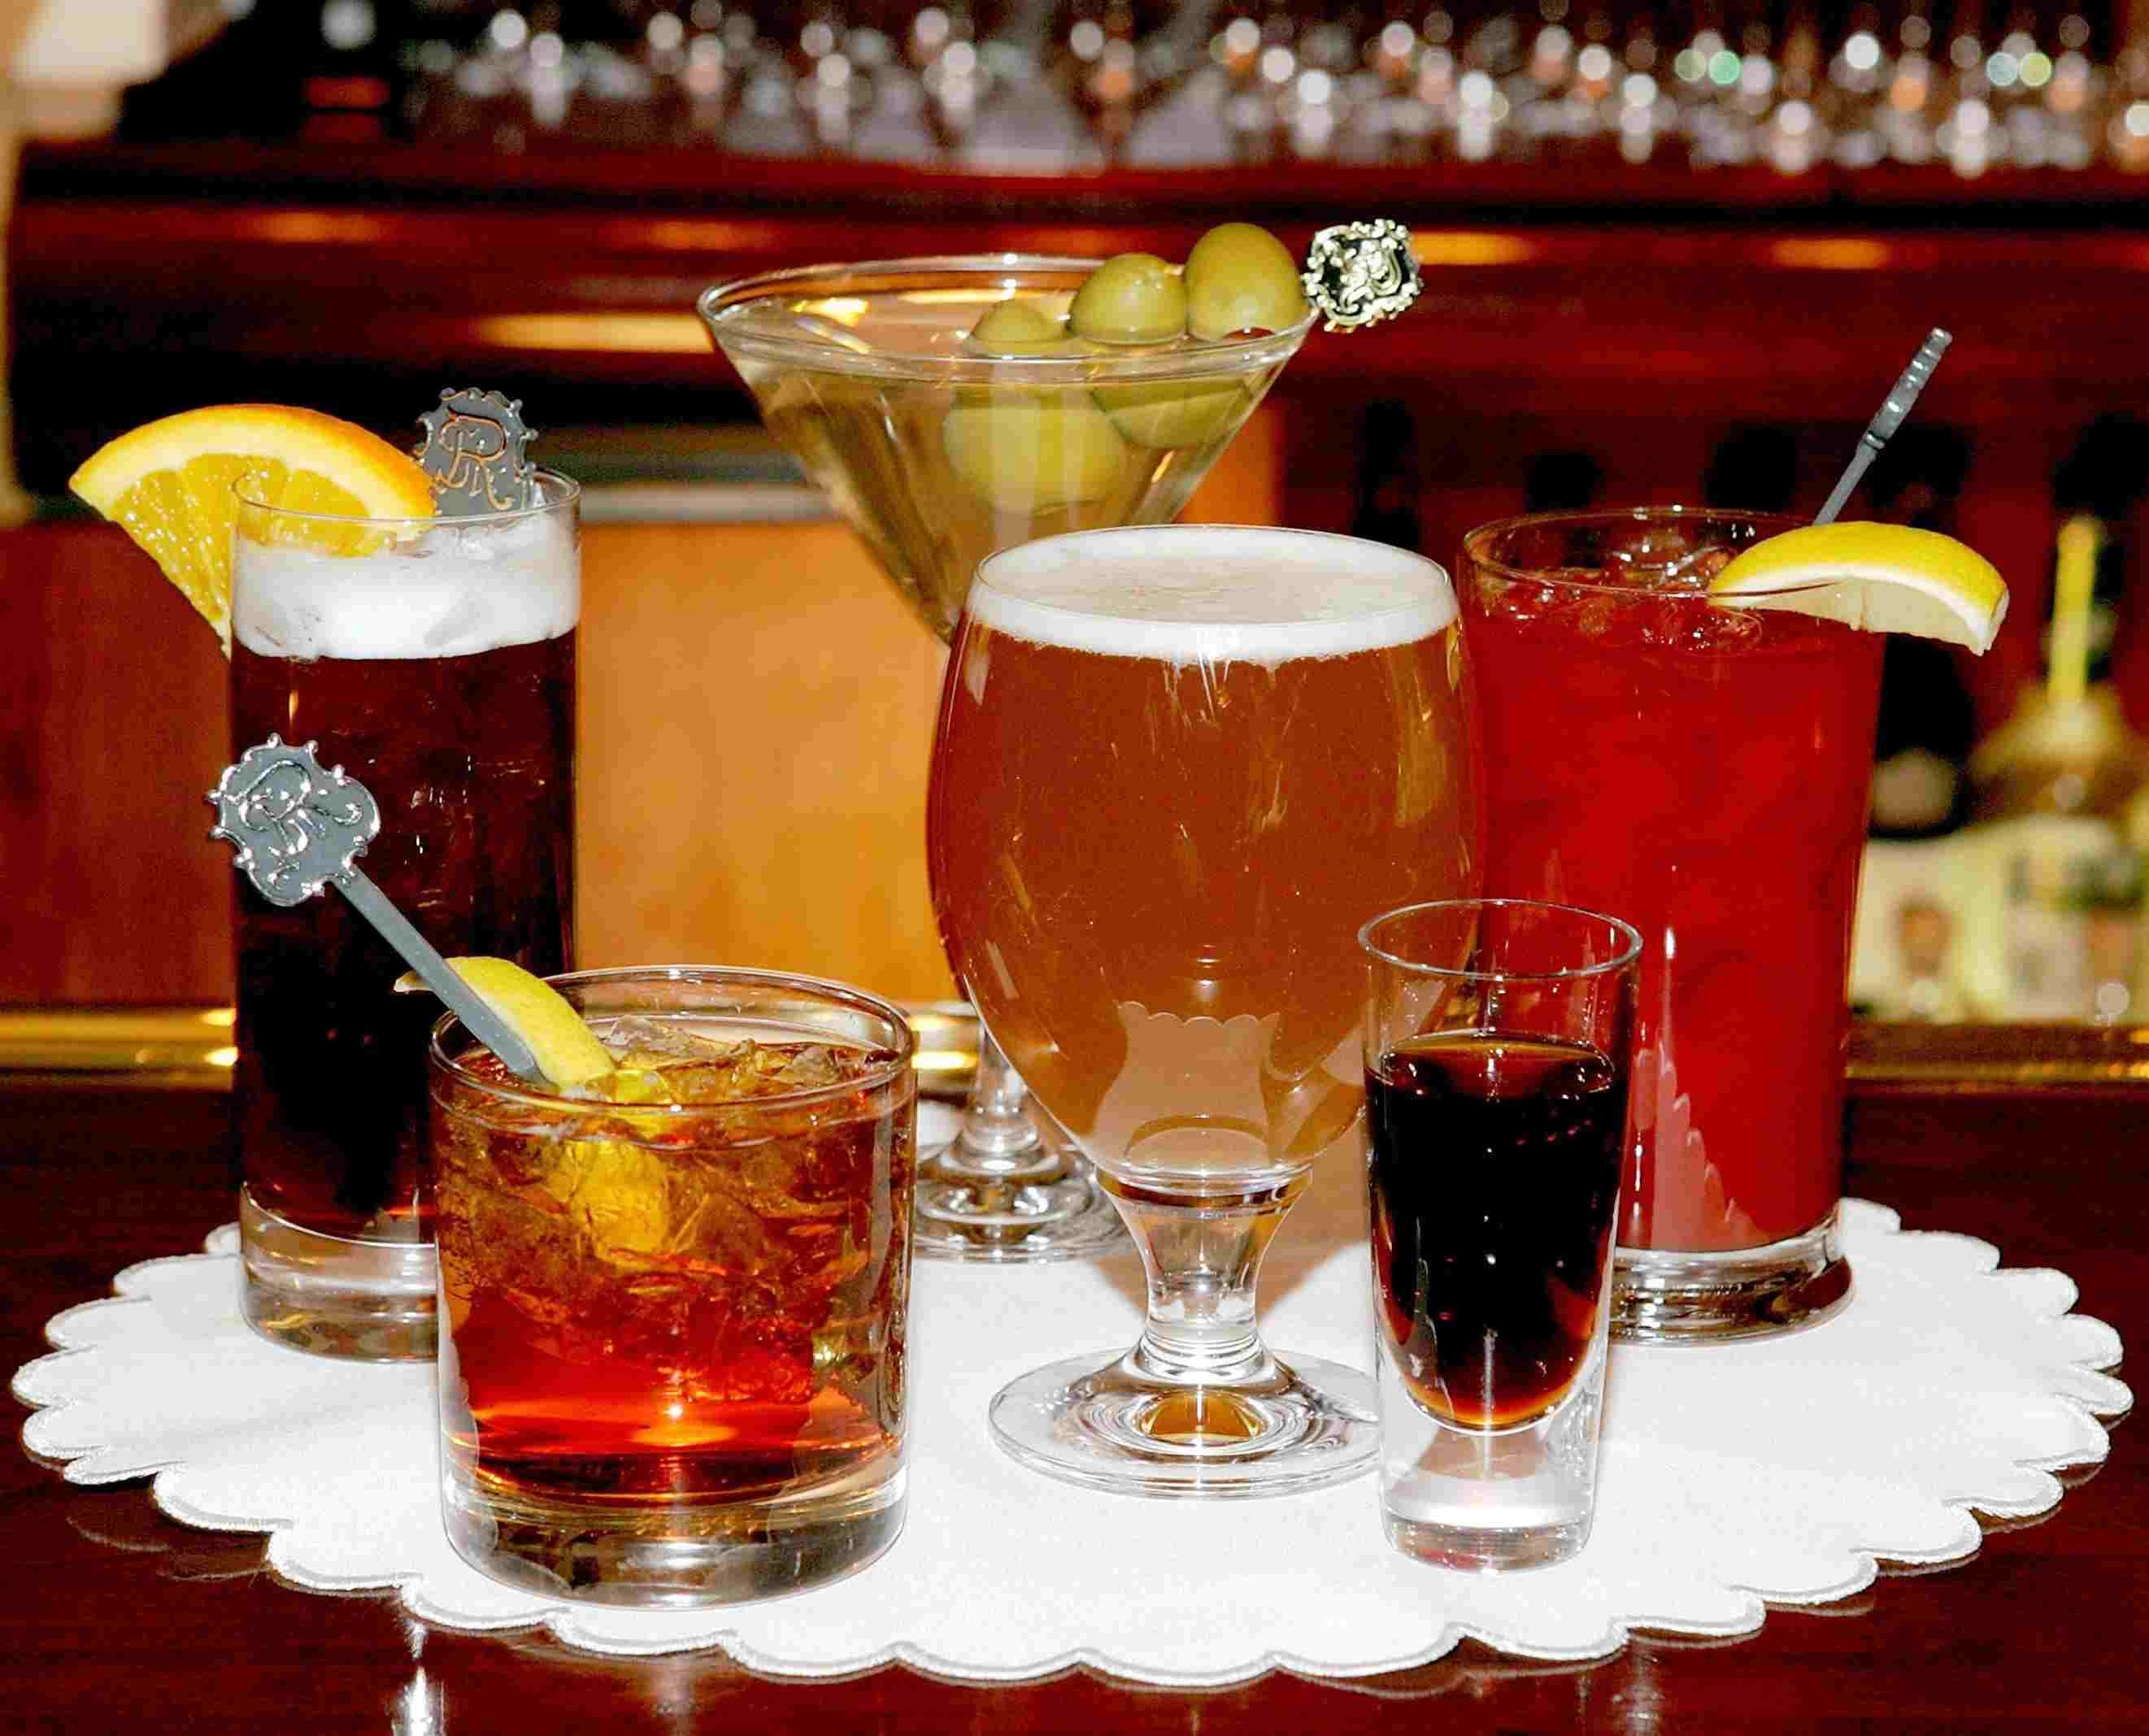 A variety of alcoholic drinks on a table, including beer, shots, and hard liquor., also toxic to dogs